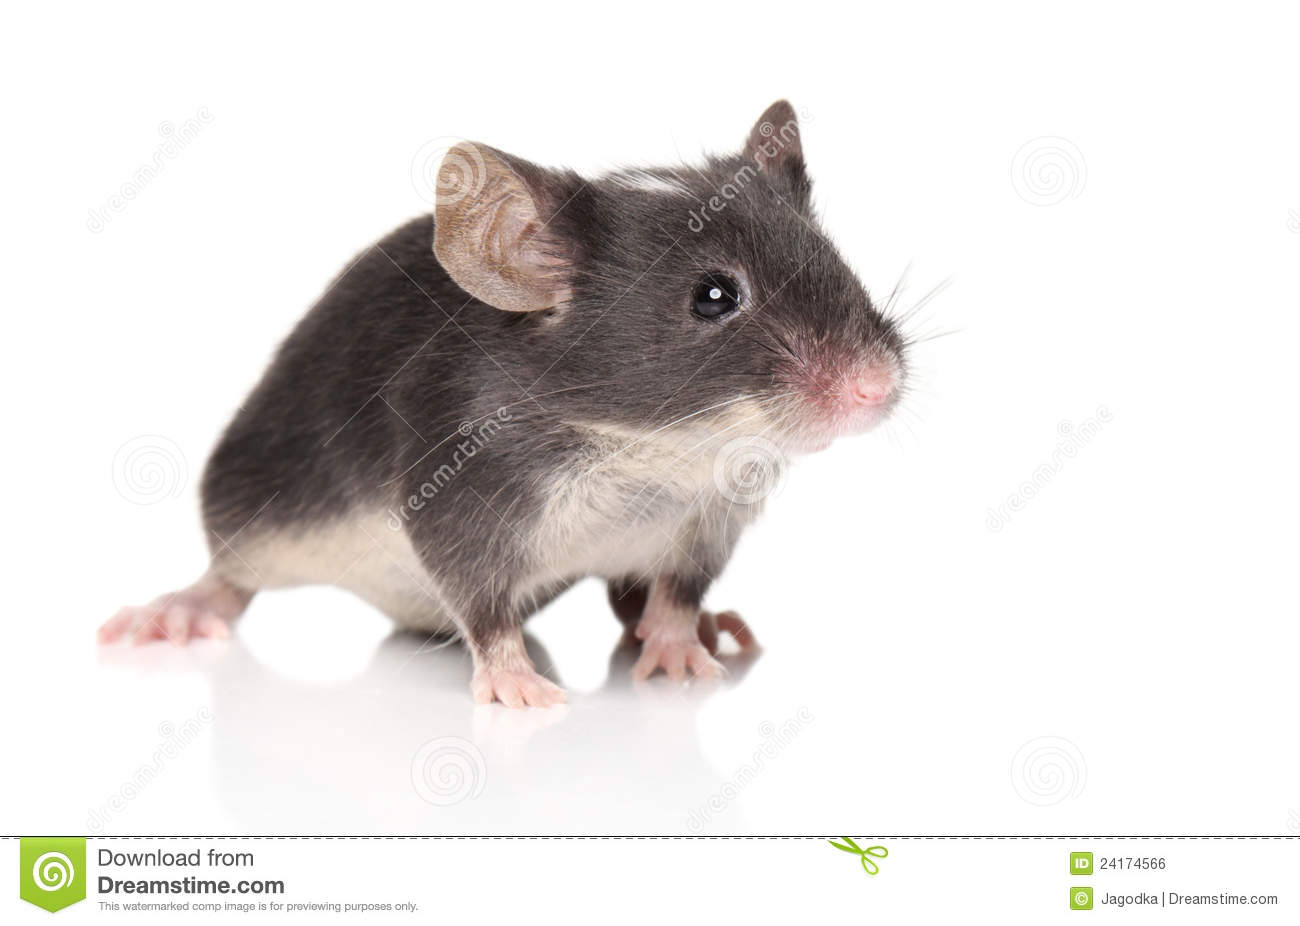 little mouse posing royalty free stock image image 24174566